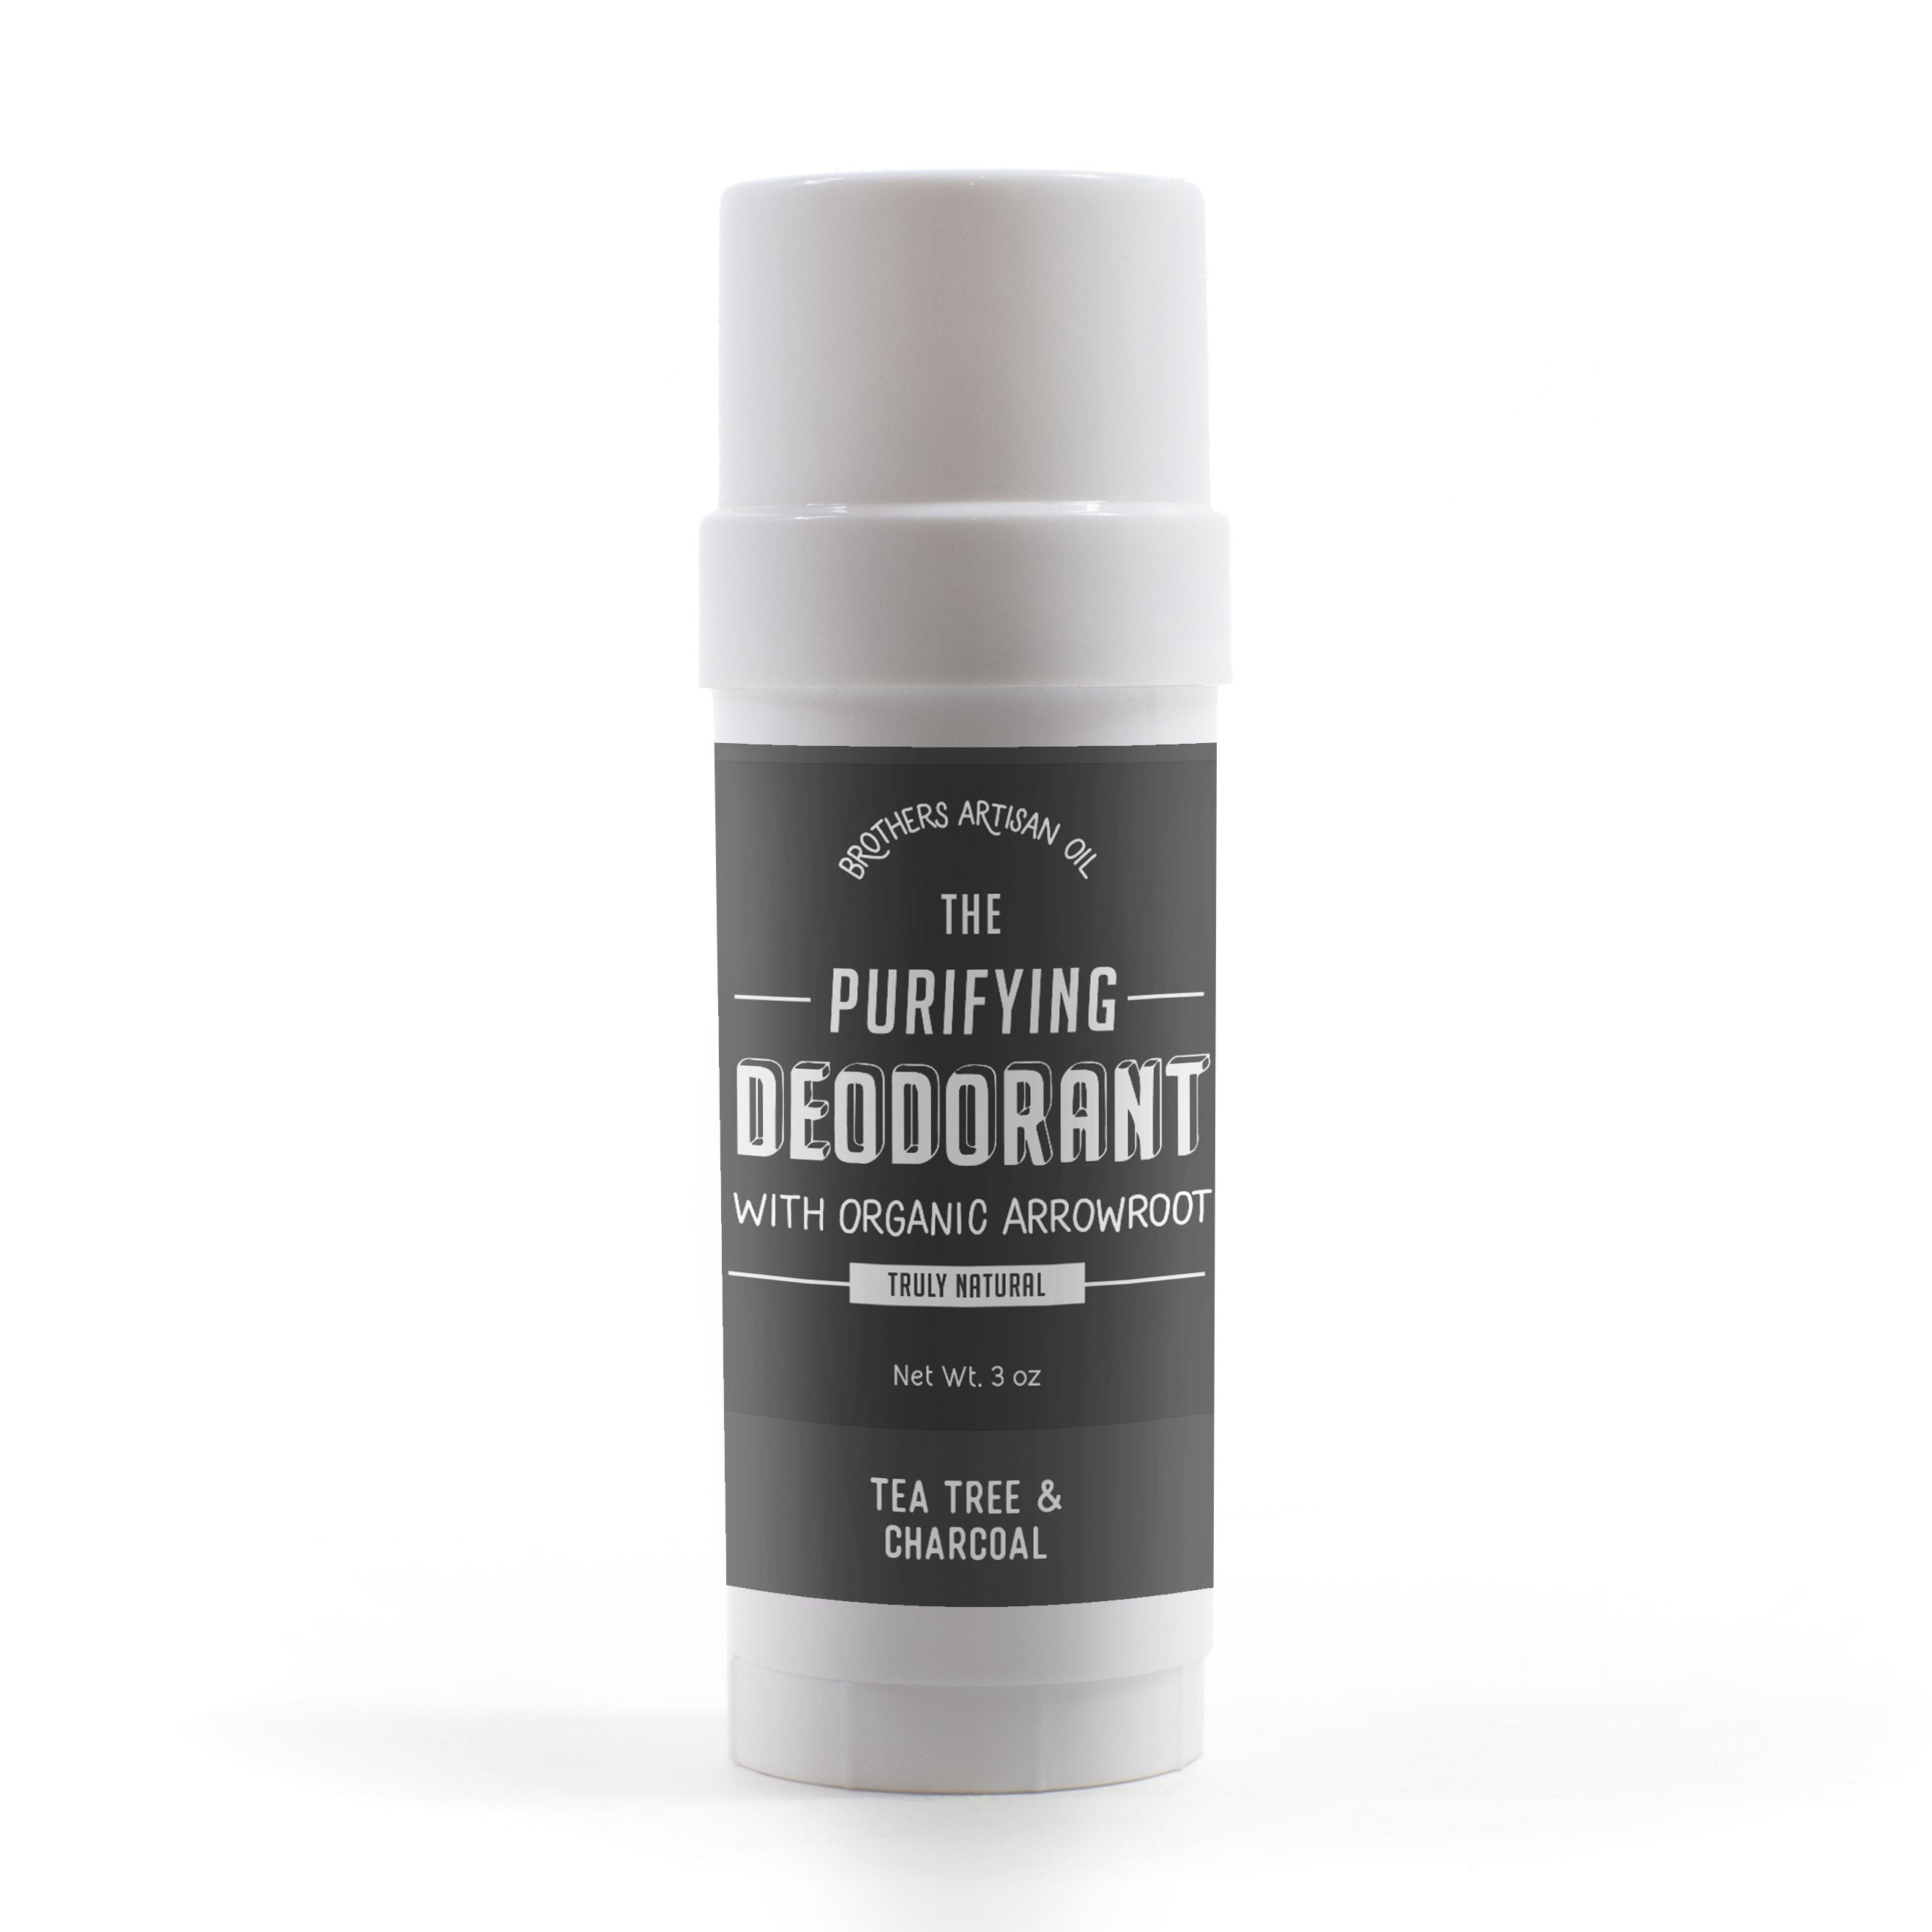 BAO Magnesium Stick Deodorant: BAO The Purifying Deodorant